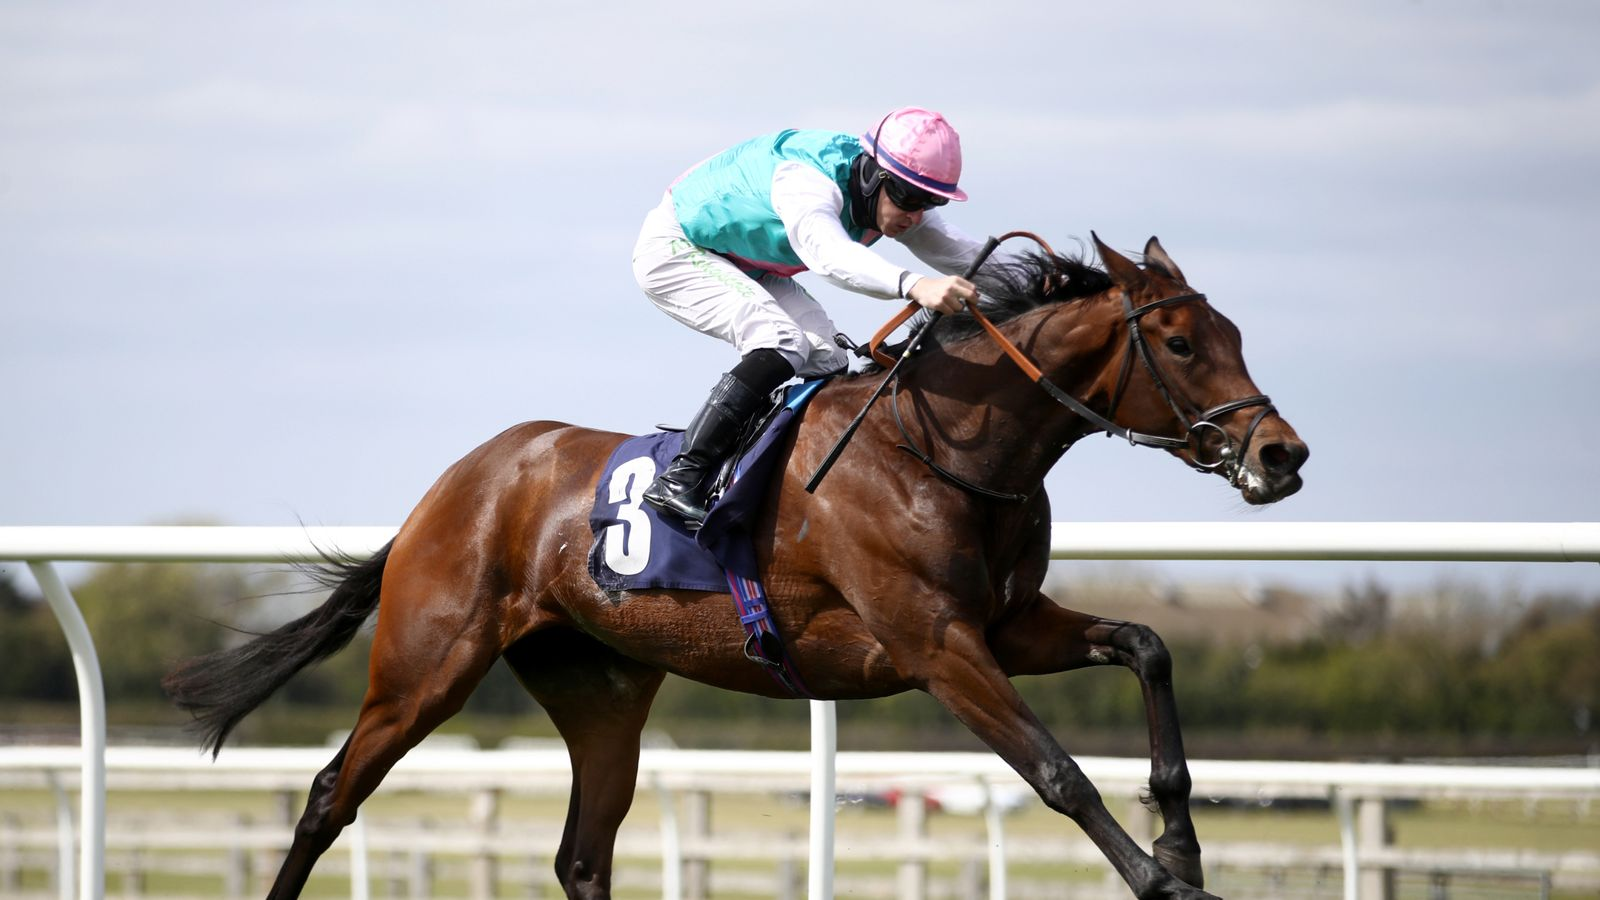 Noon Star and Teona clash in Tattersalls Musidora Stakes